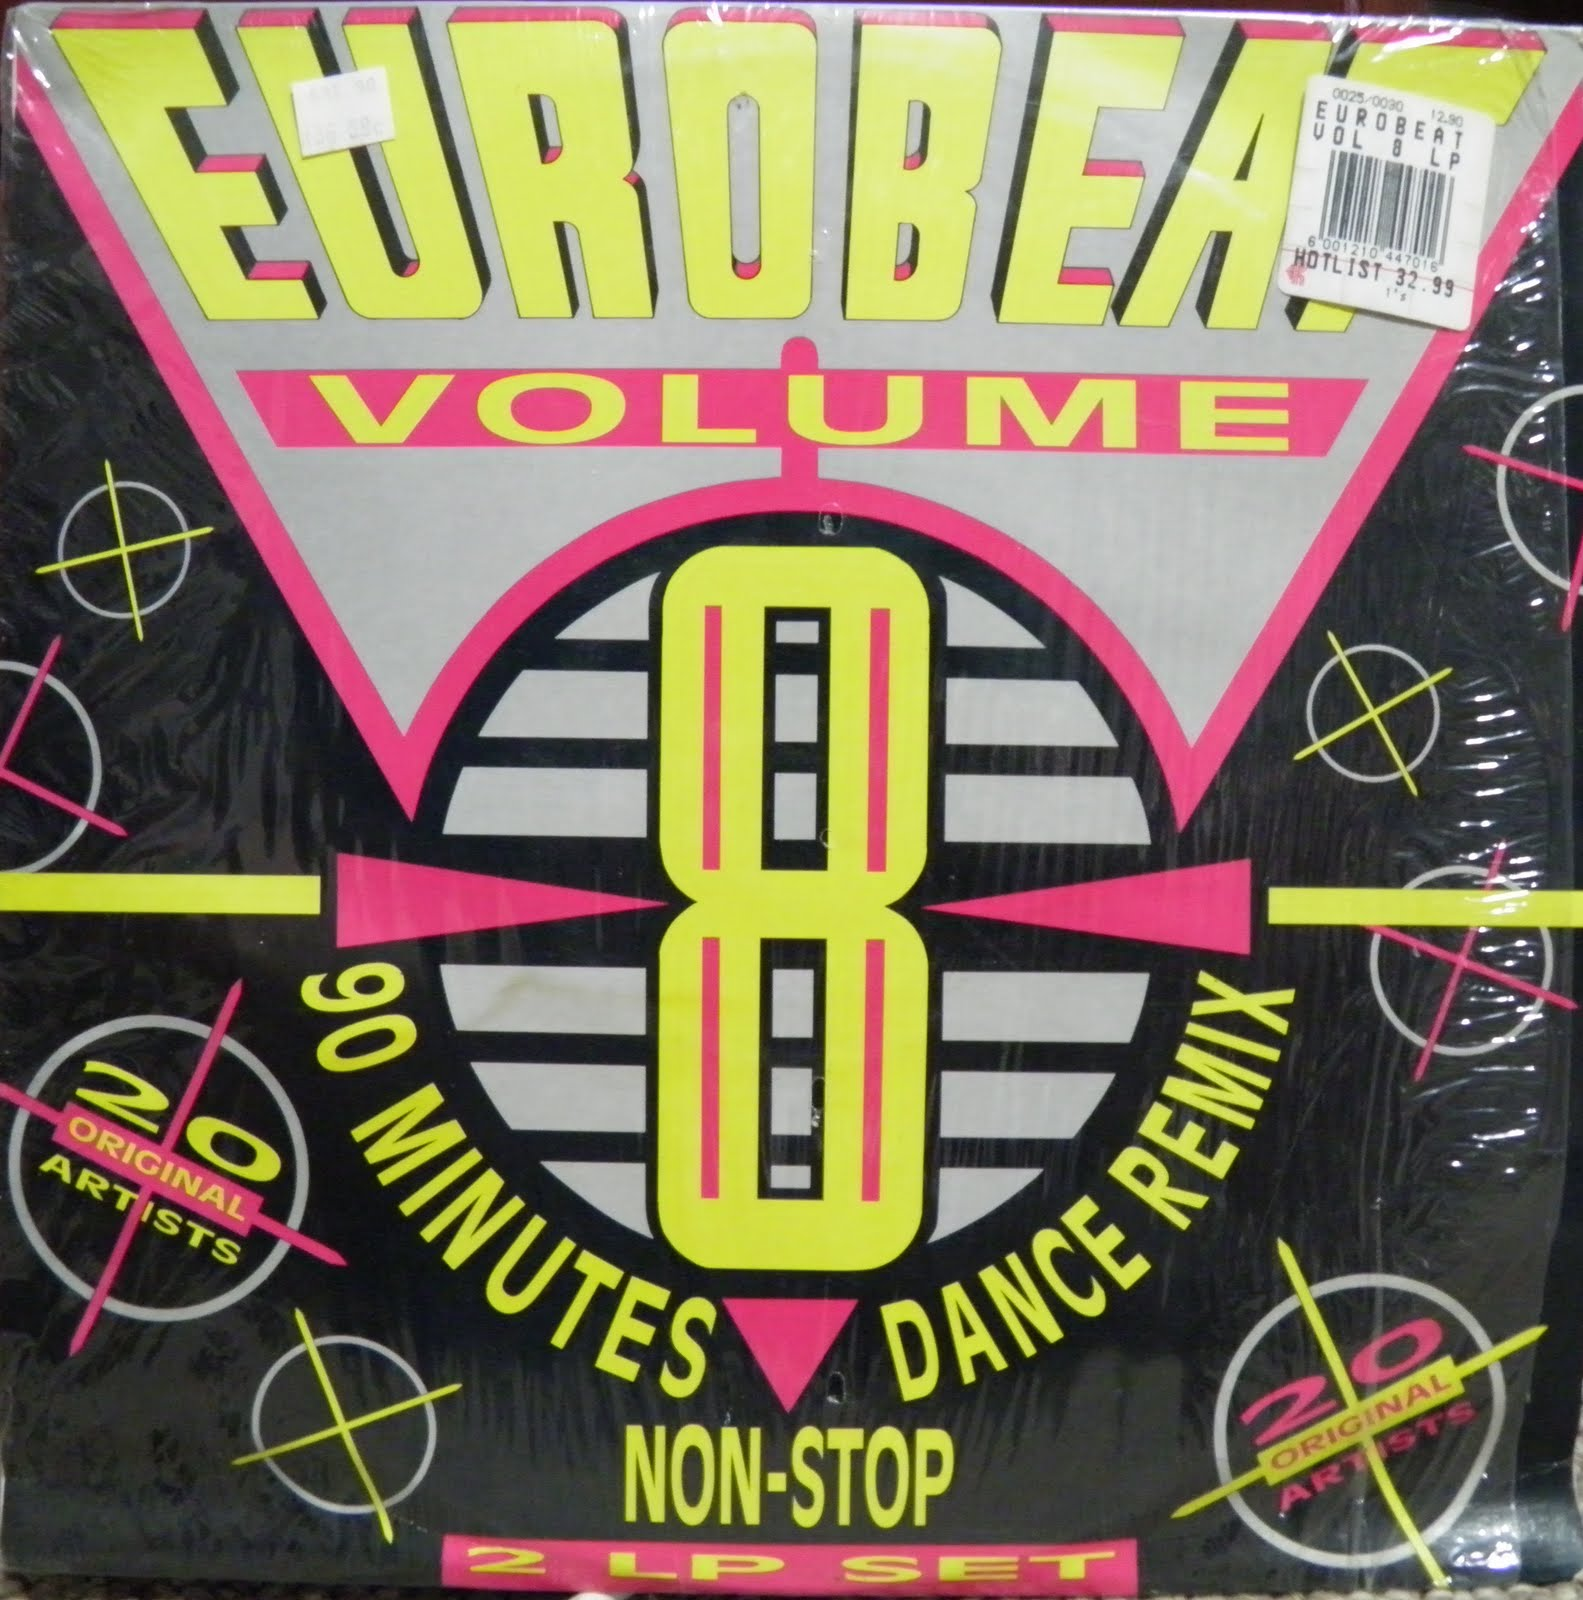 Retro disco hi nrg eurobeat volume 8 90 minute non Best 80s house remixes